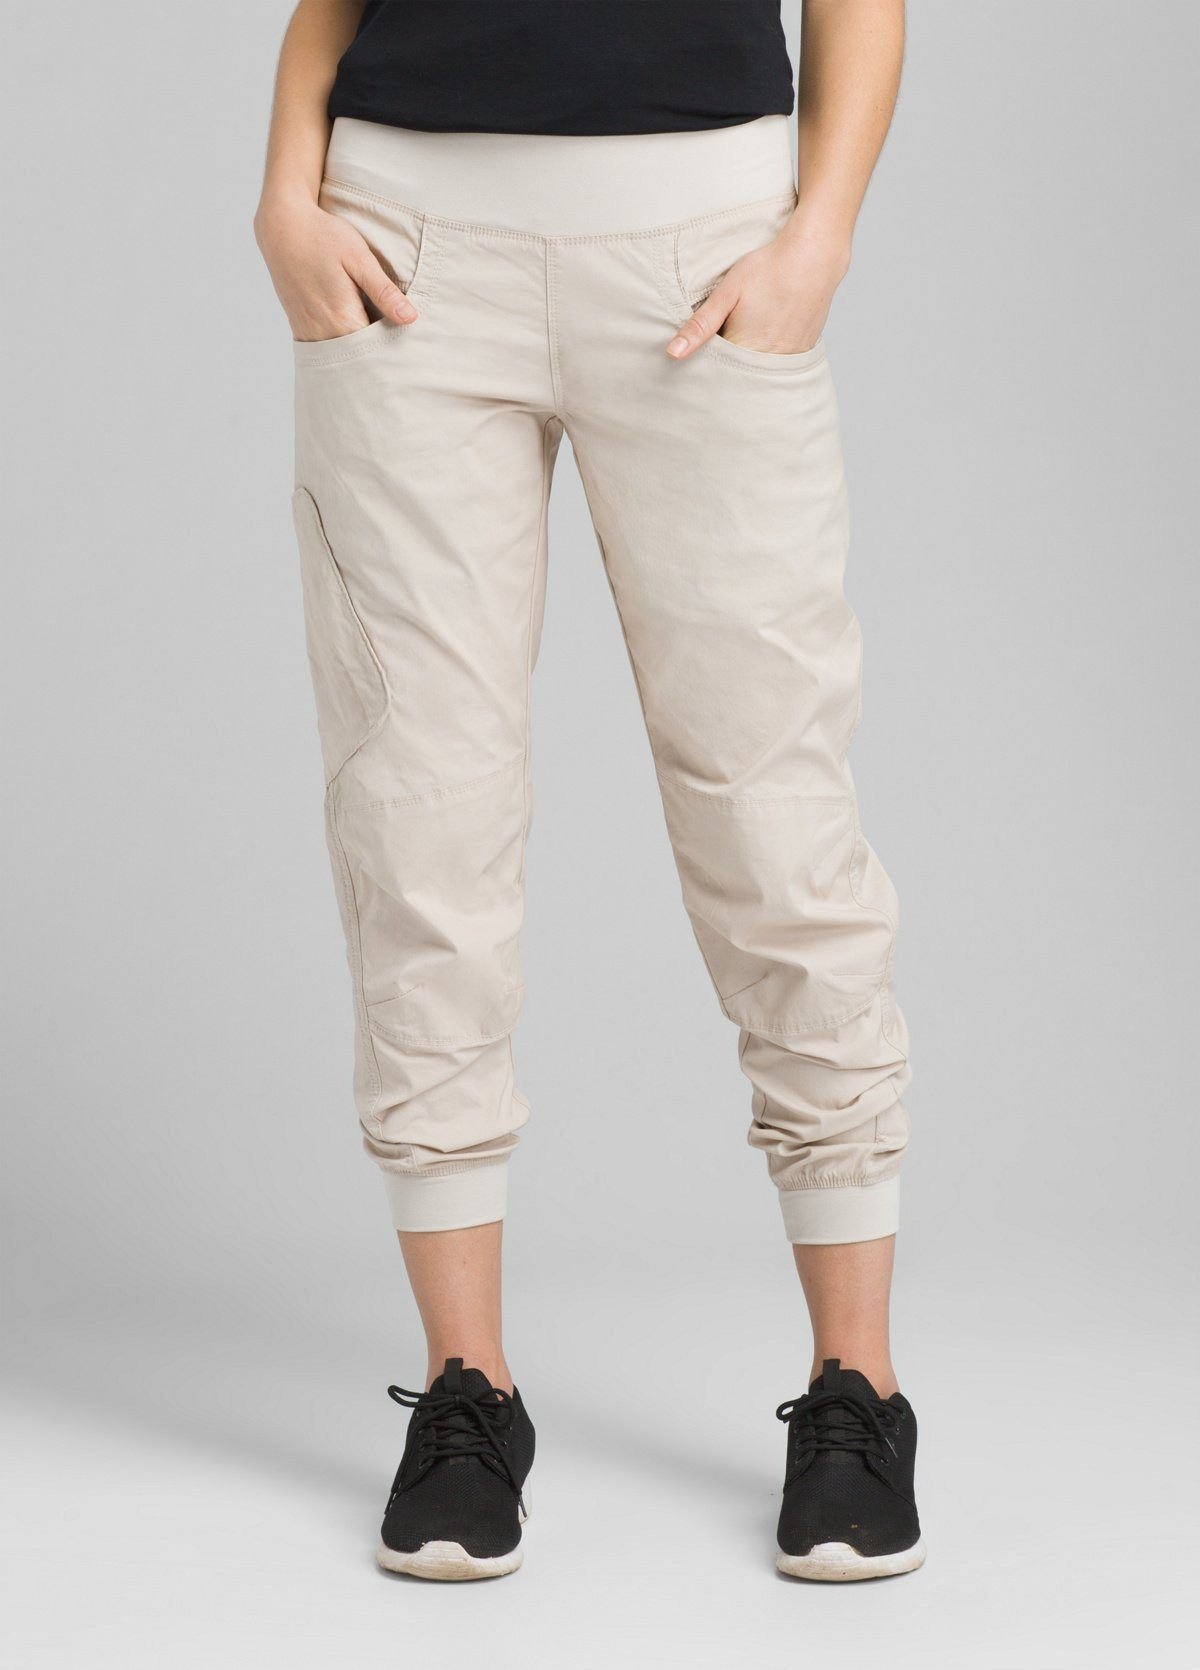 PrAna - W's Kanab Pant - Organic Cotton - Weekendbee - sustainable sportswear